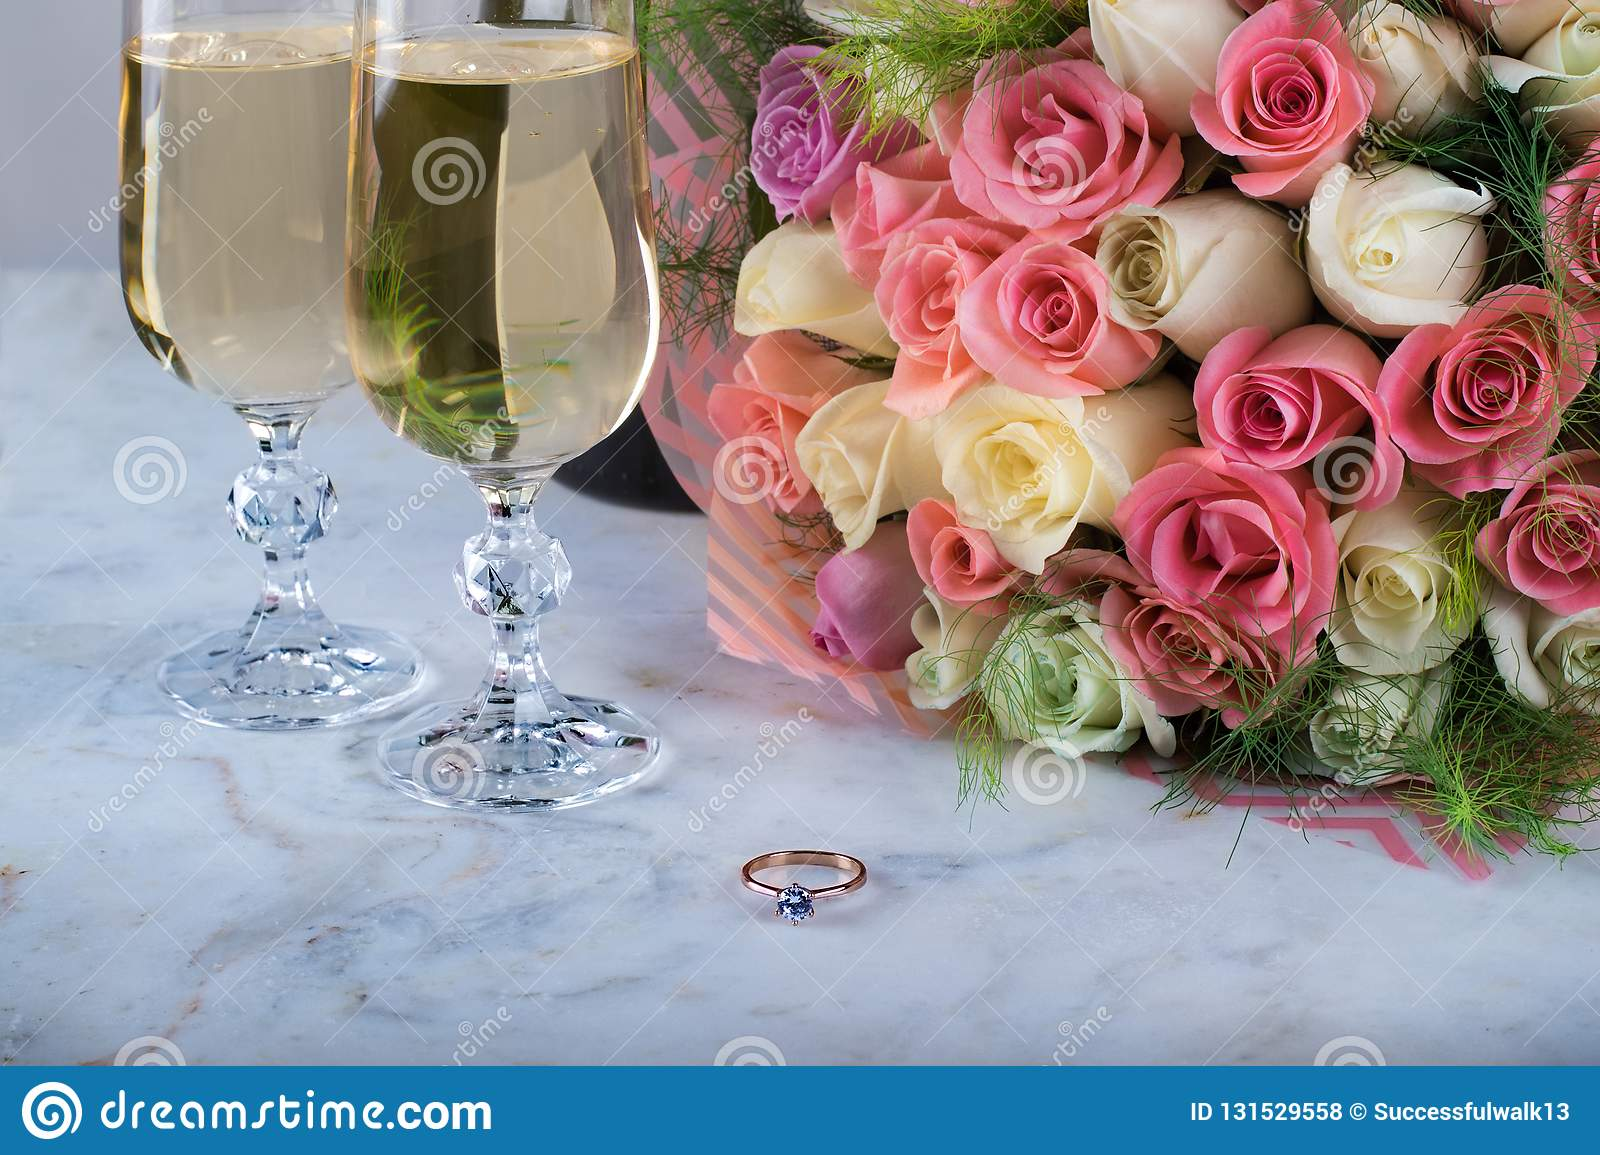 A beautiful bridal bouquet of delicate roses, a ring with a diamond, two glasses of champagne on a marble table. Festive day,